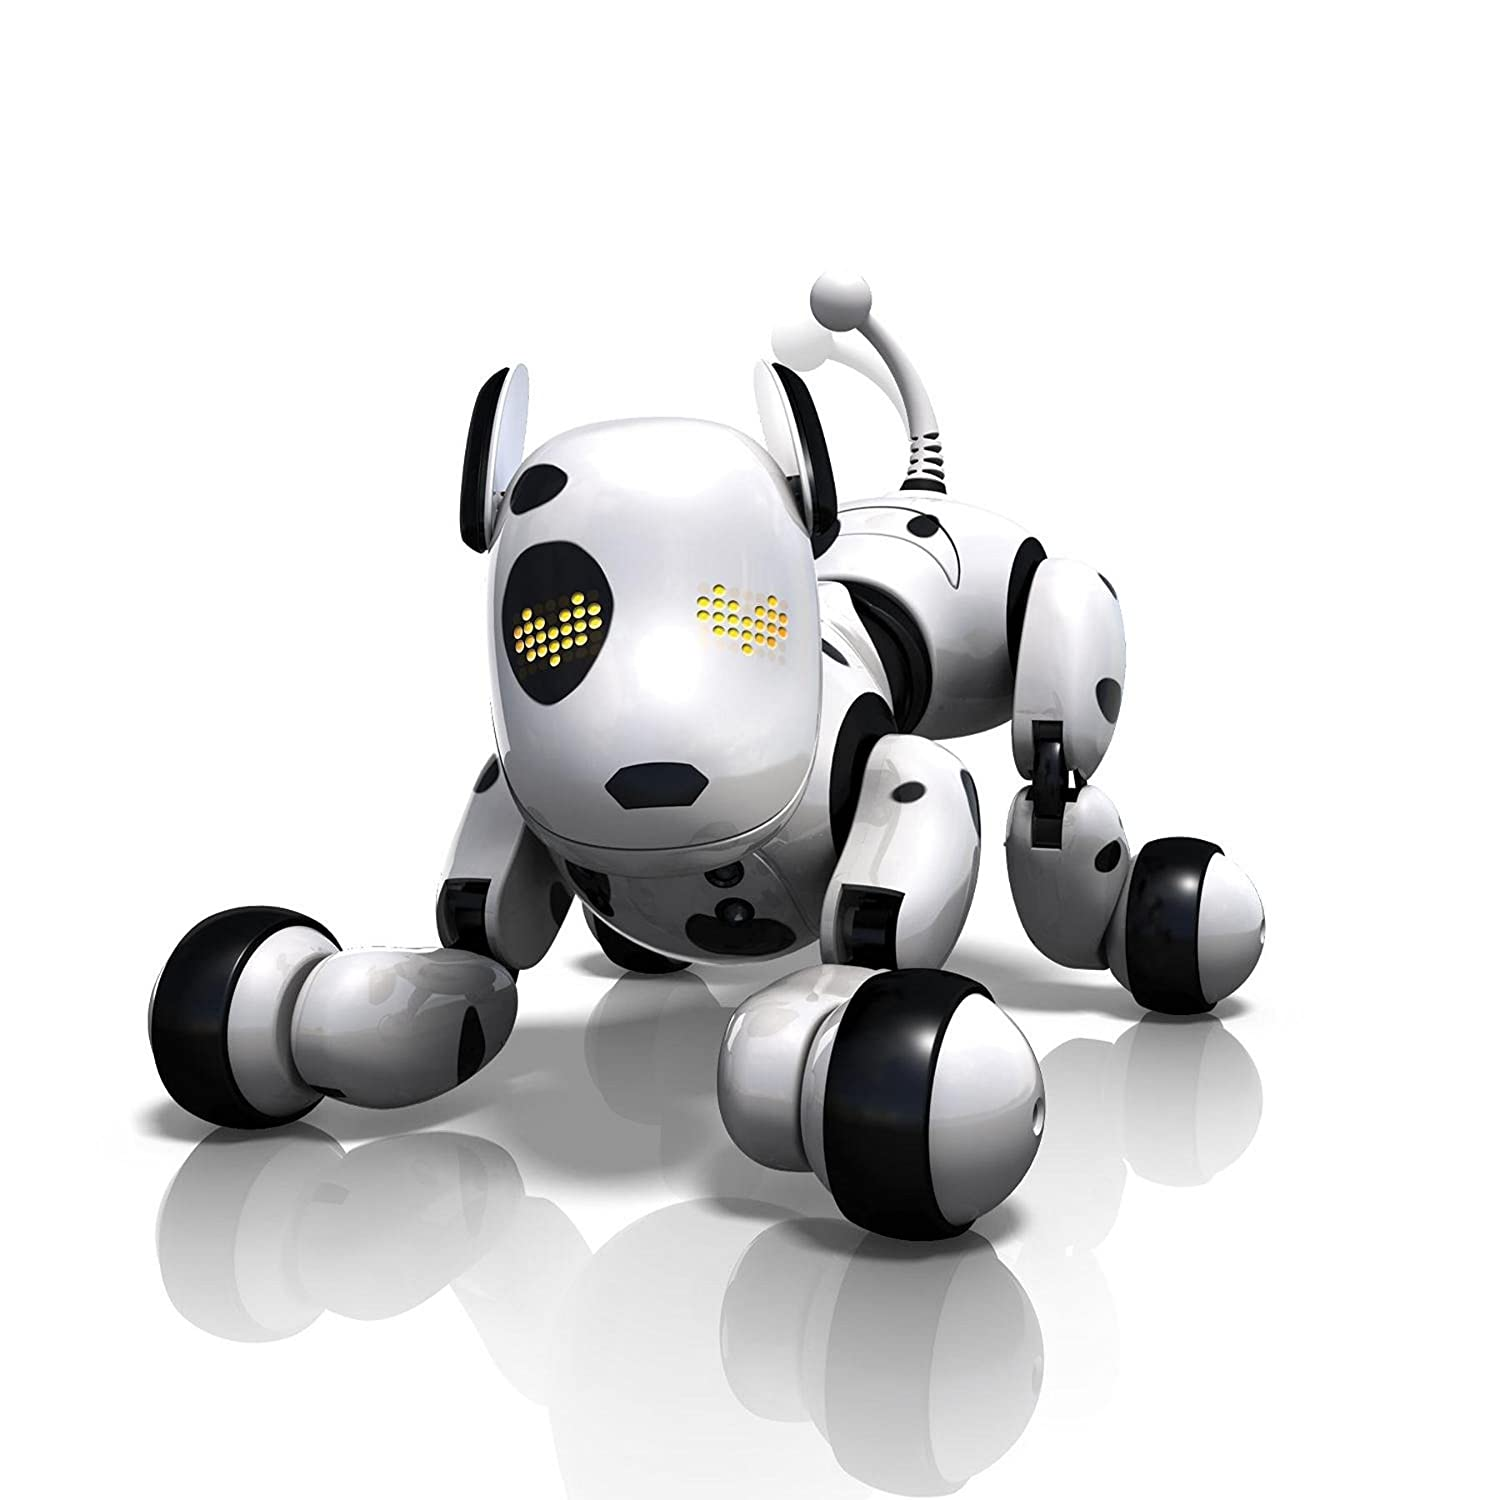 Robot Toy Dog From The